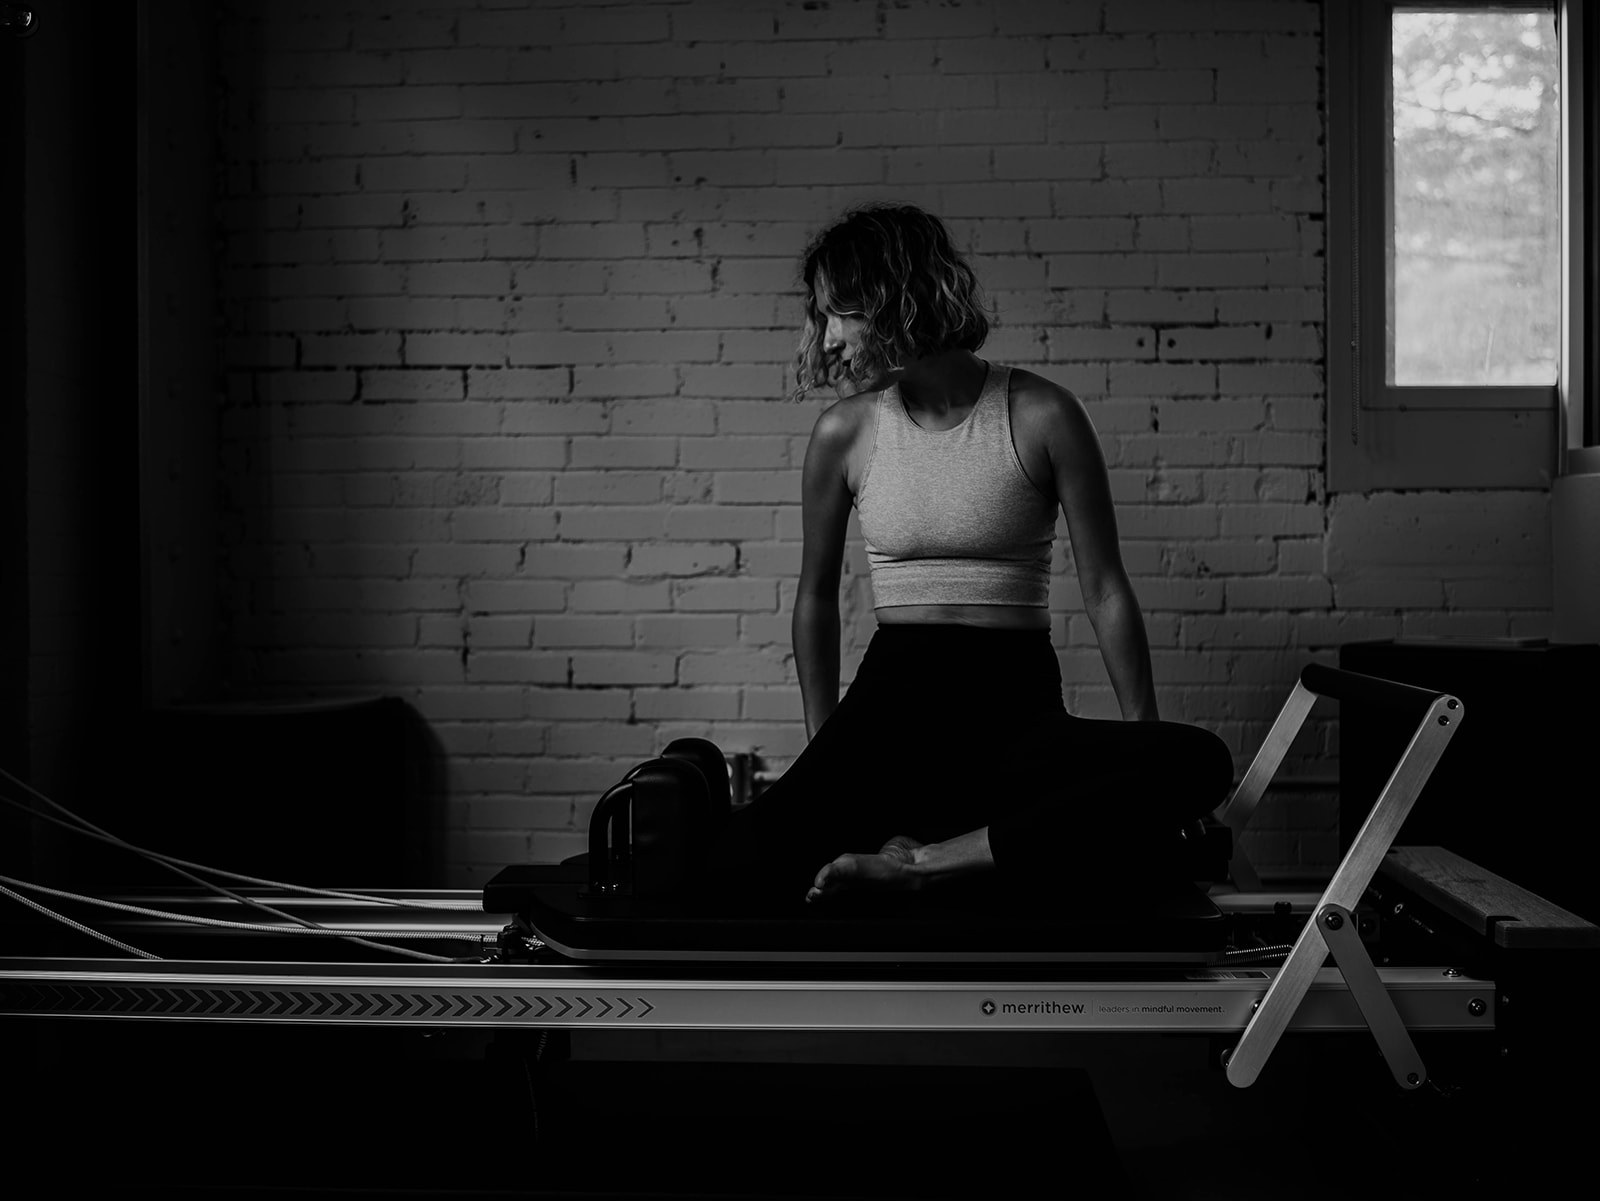 Stott Pilates Mermaid on the Reformer at home workout